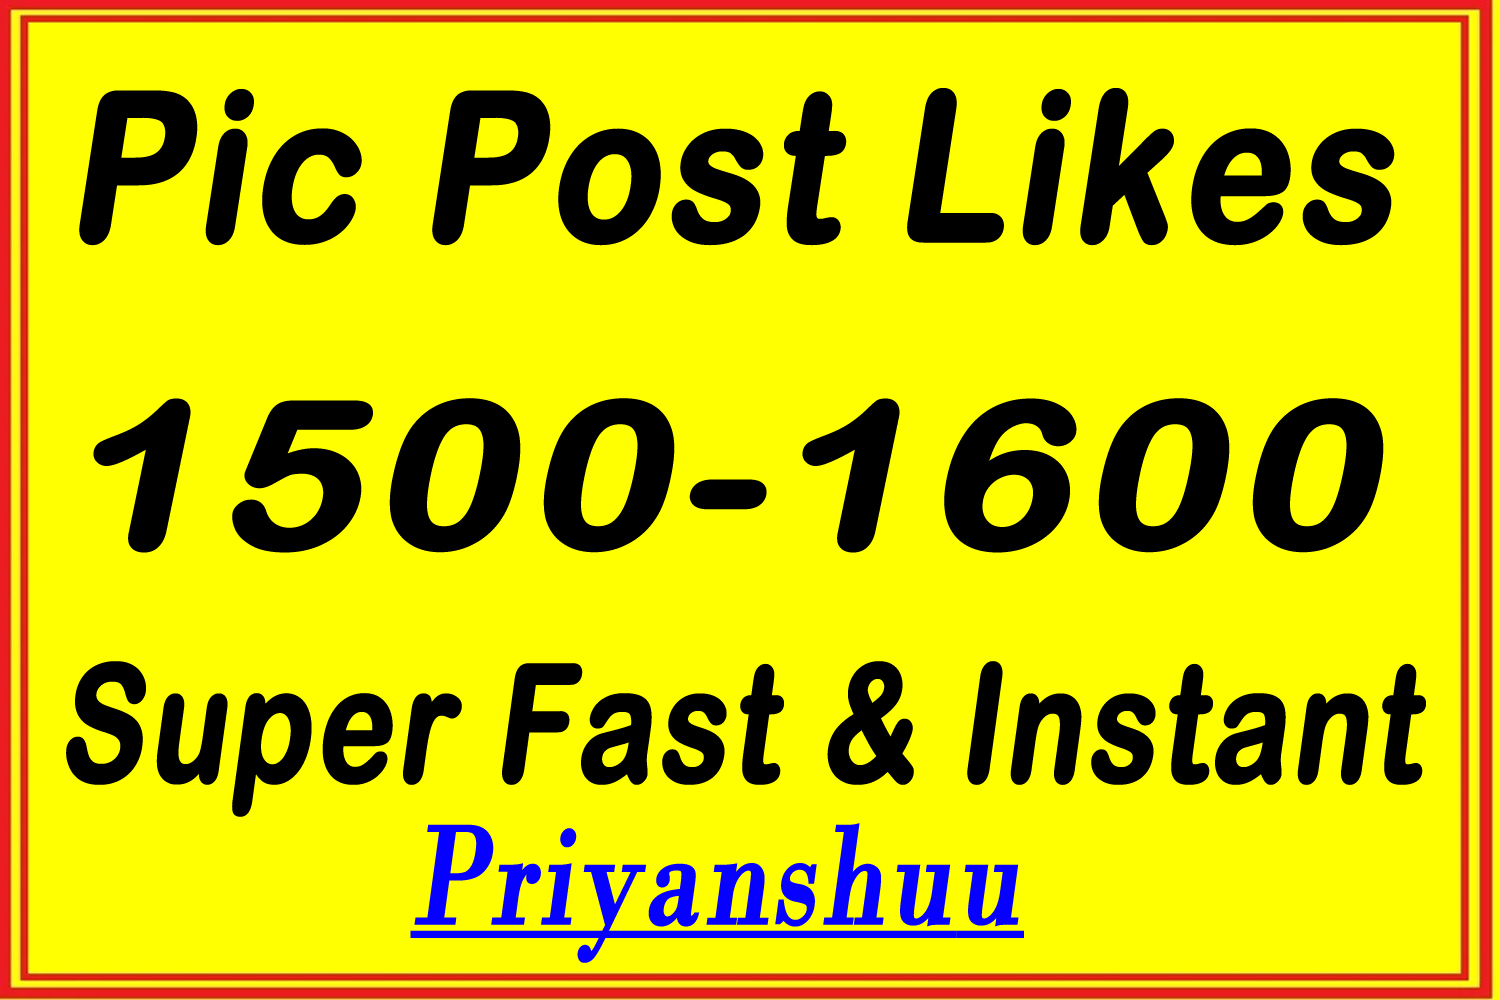 1500+ pic post promotion service within some hours